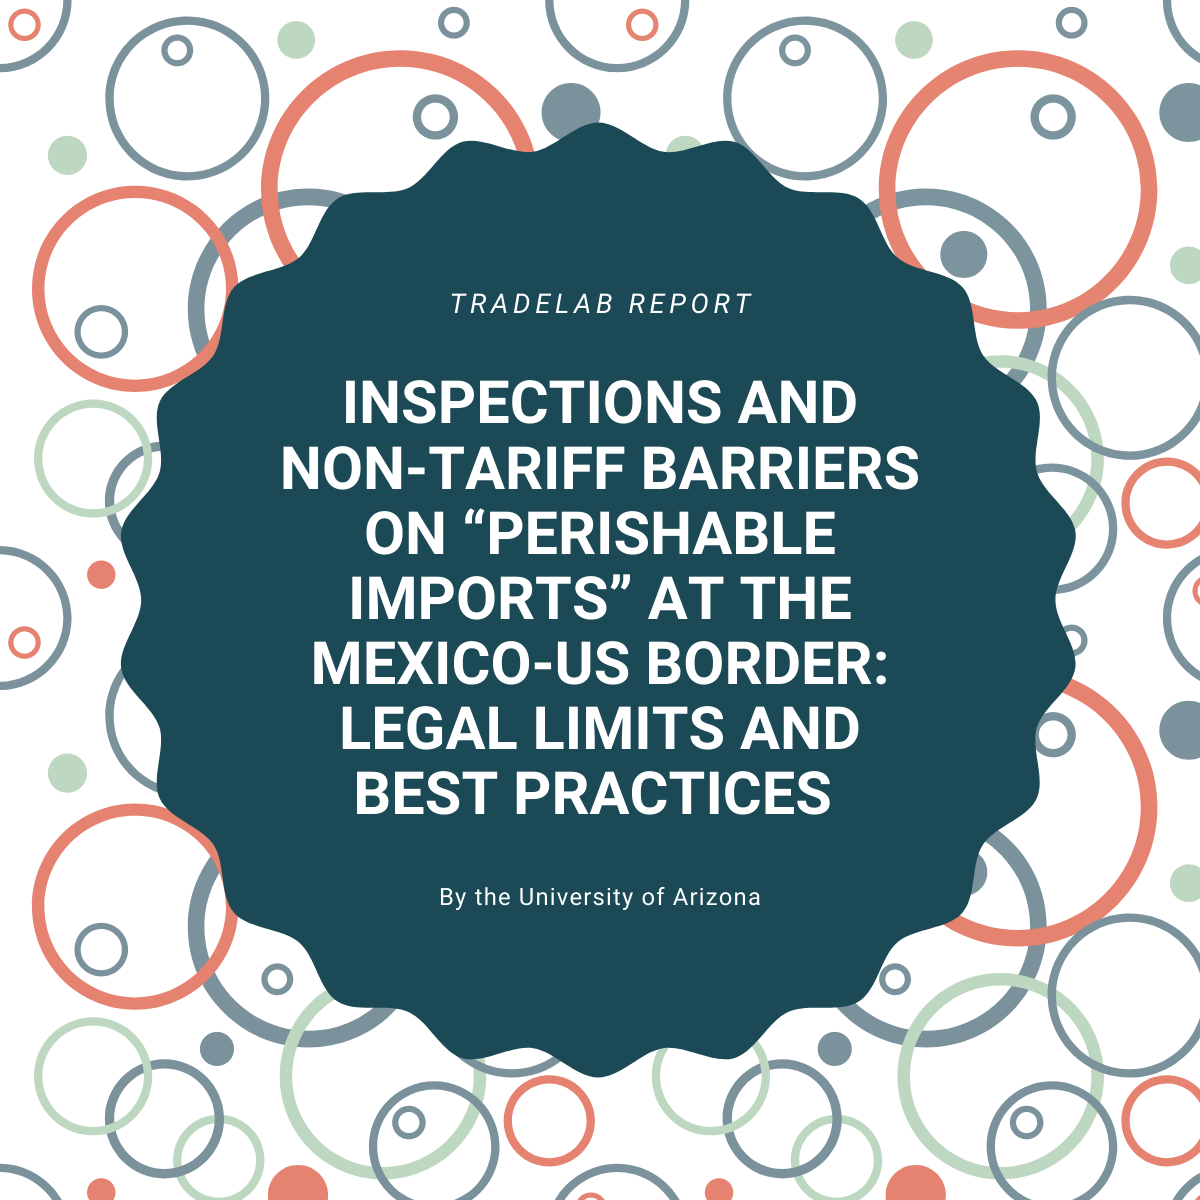 Non-Tariff Barriers Impact Perishable Imports at the Mexico-US Border